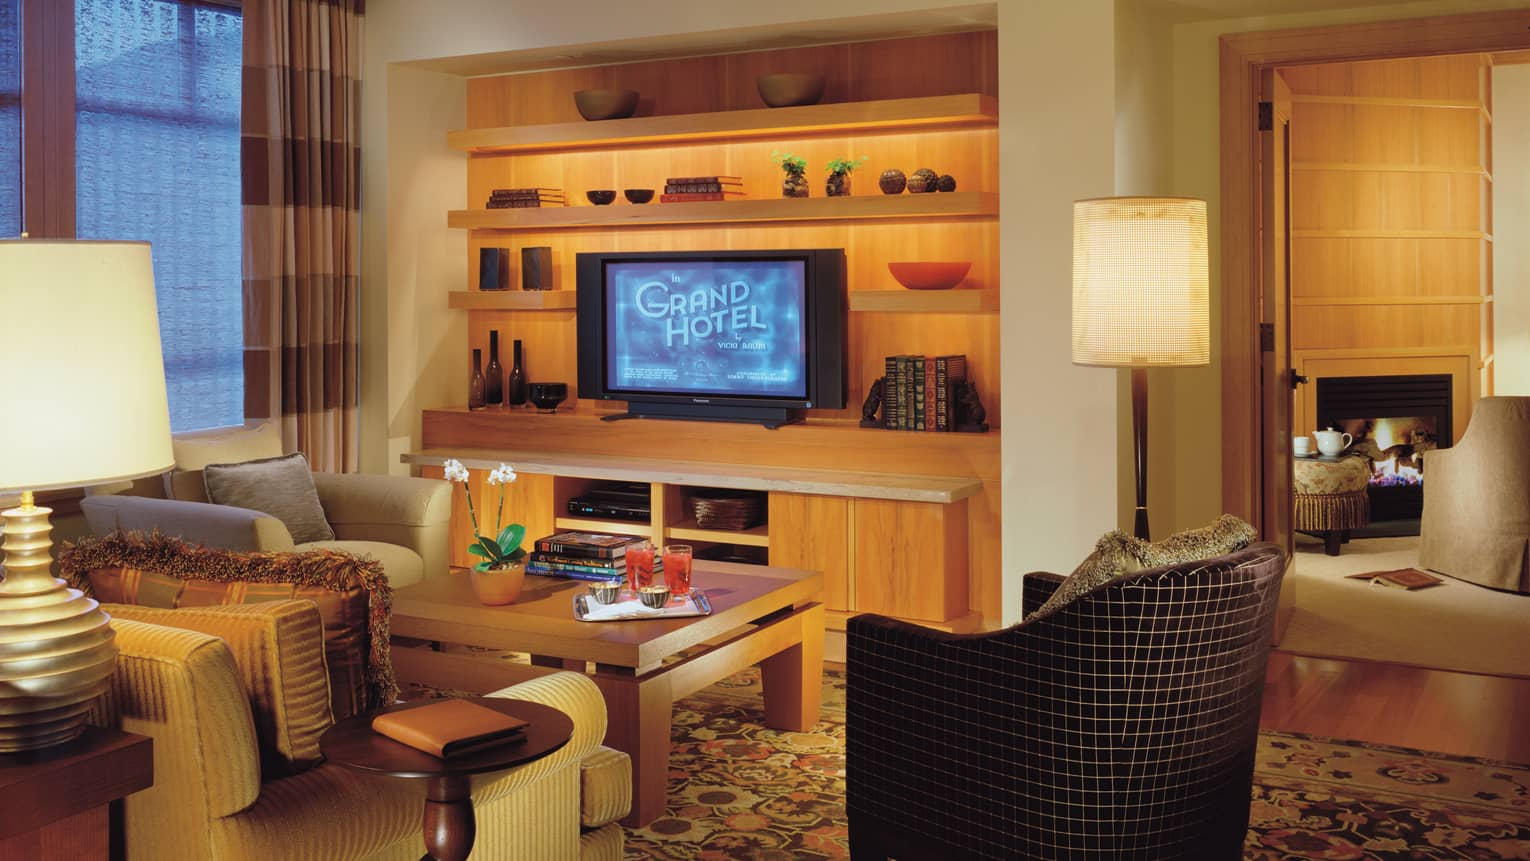 Two-Bedroom Panorama Suite living room with TV displaying Grand Hotel on shelf with art